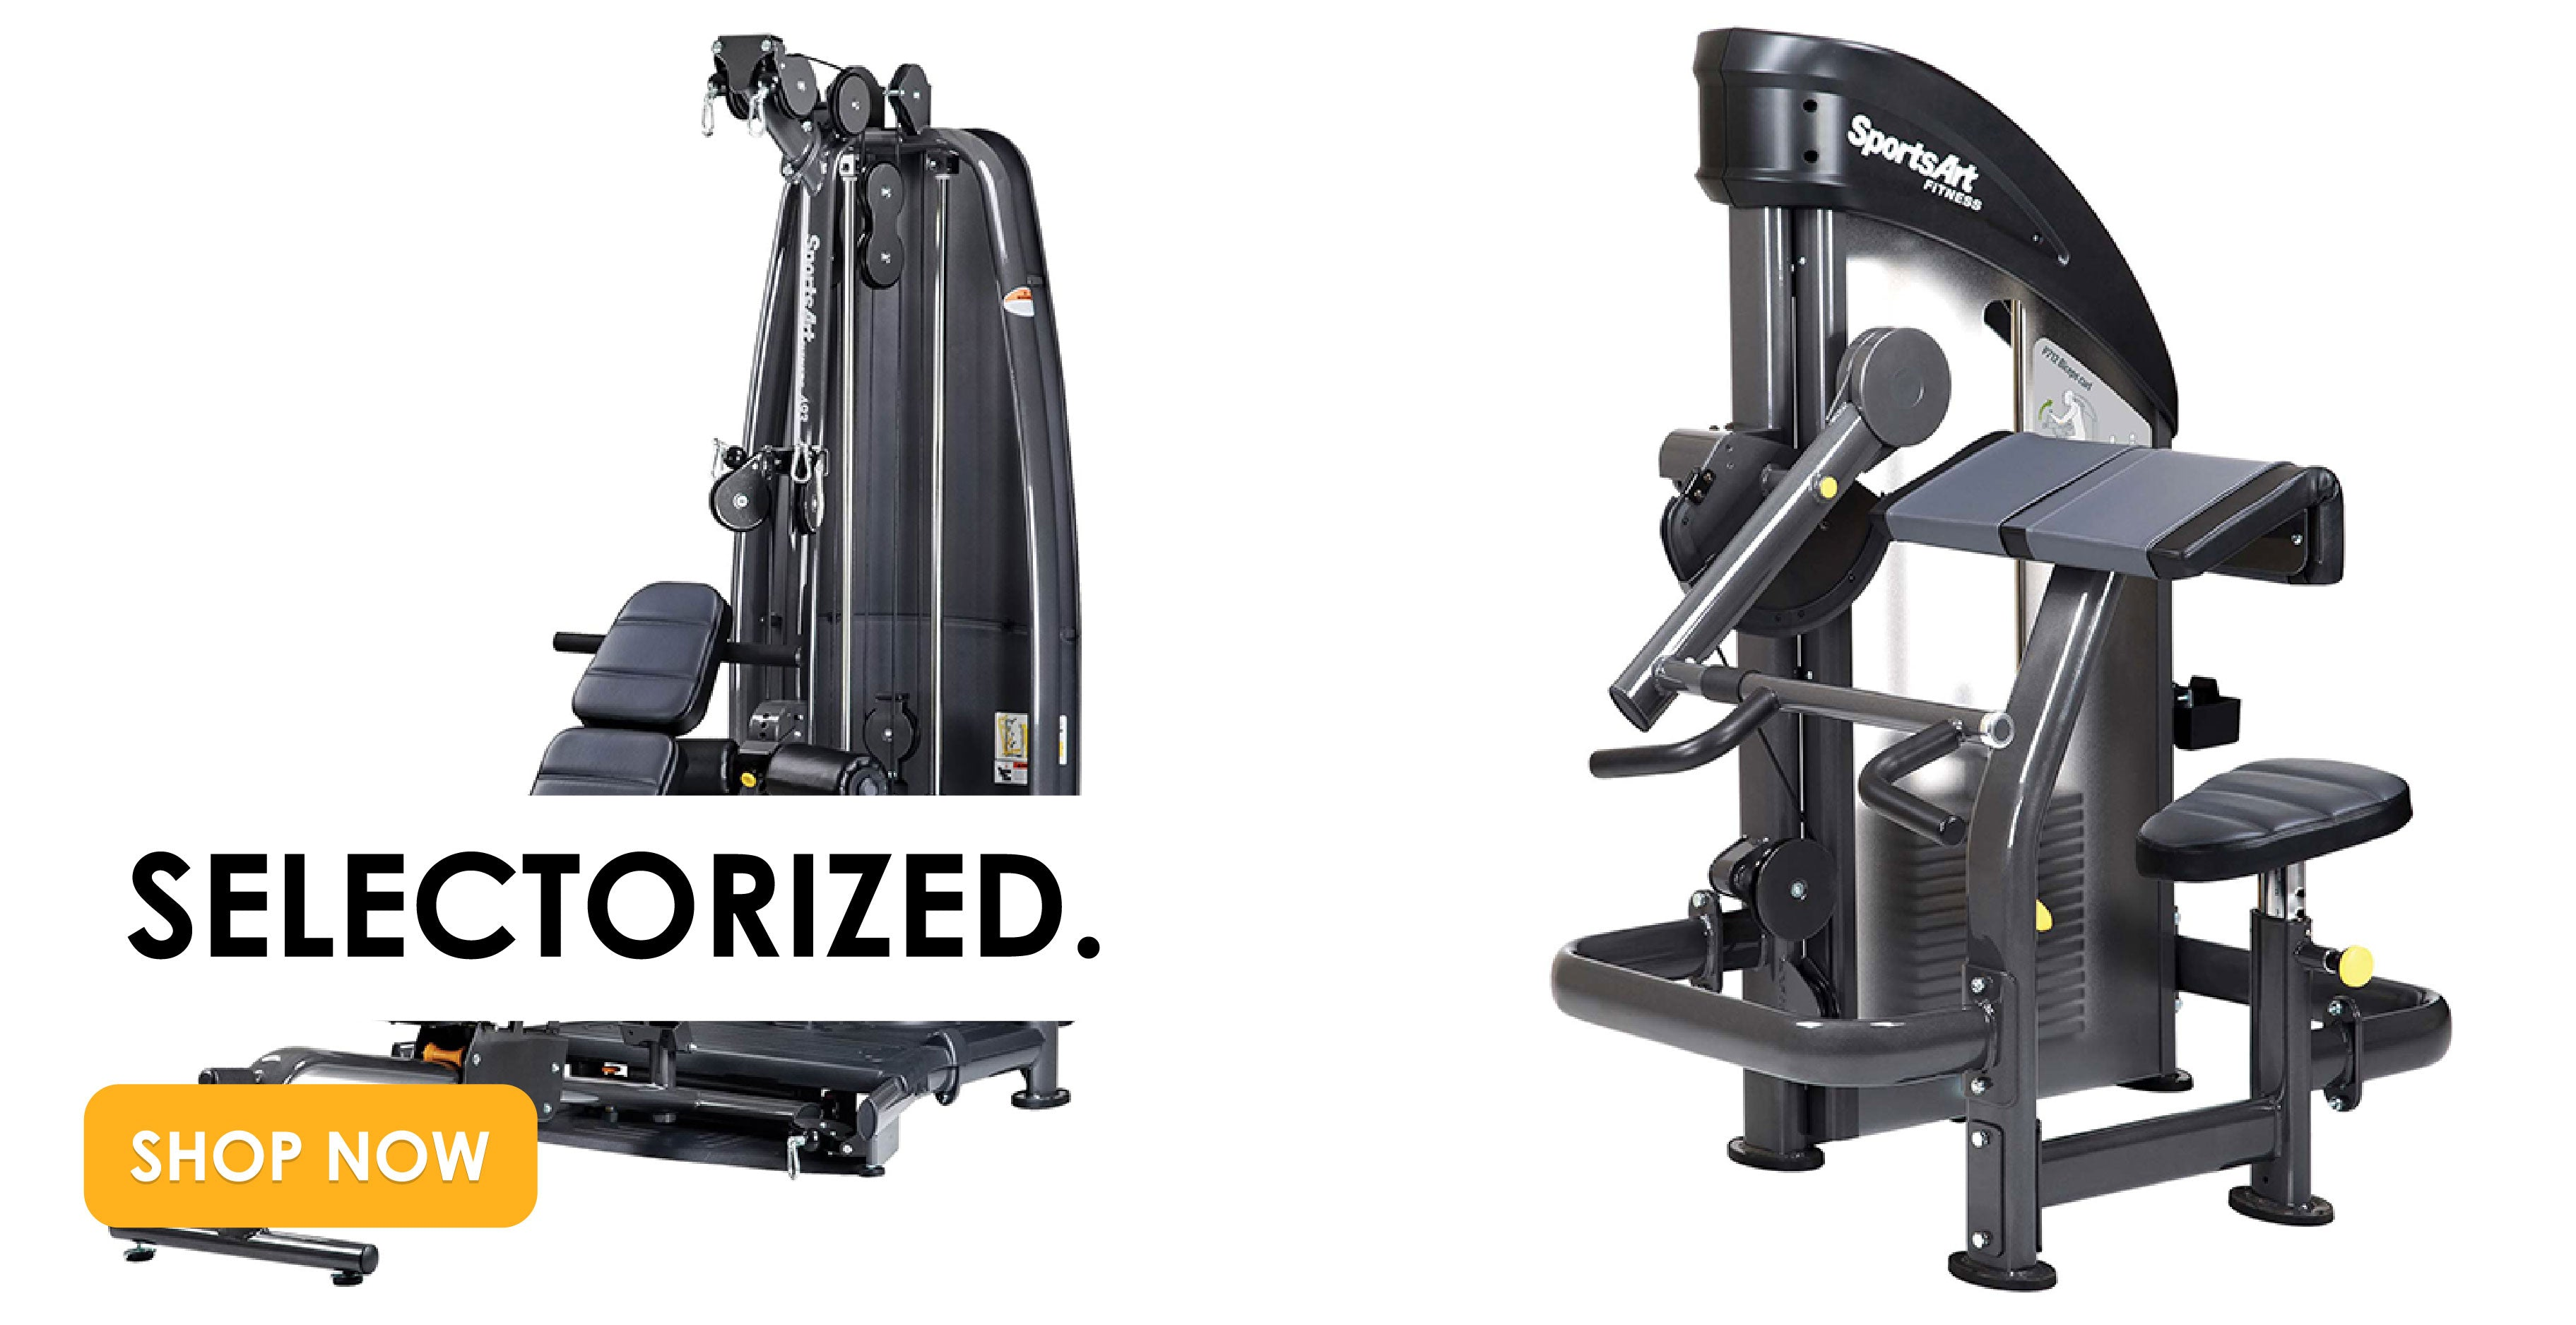 Selectorized Gym Equipment